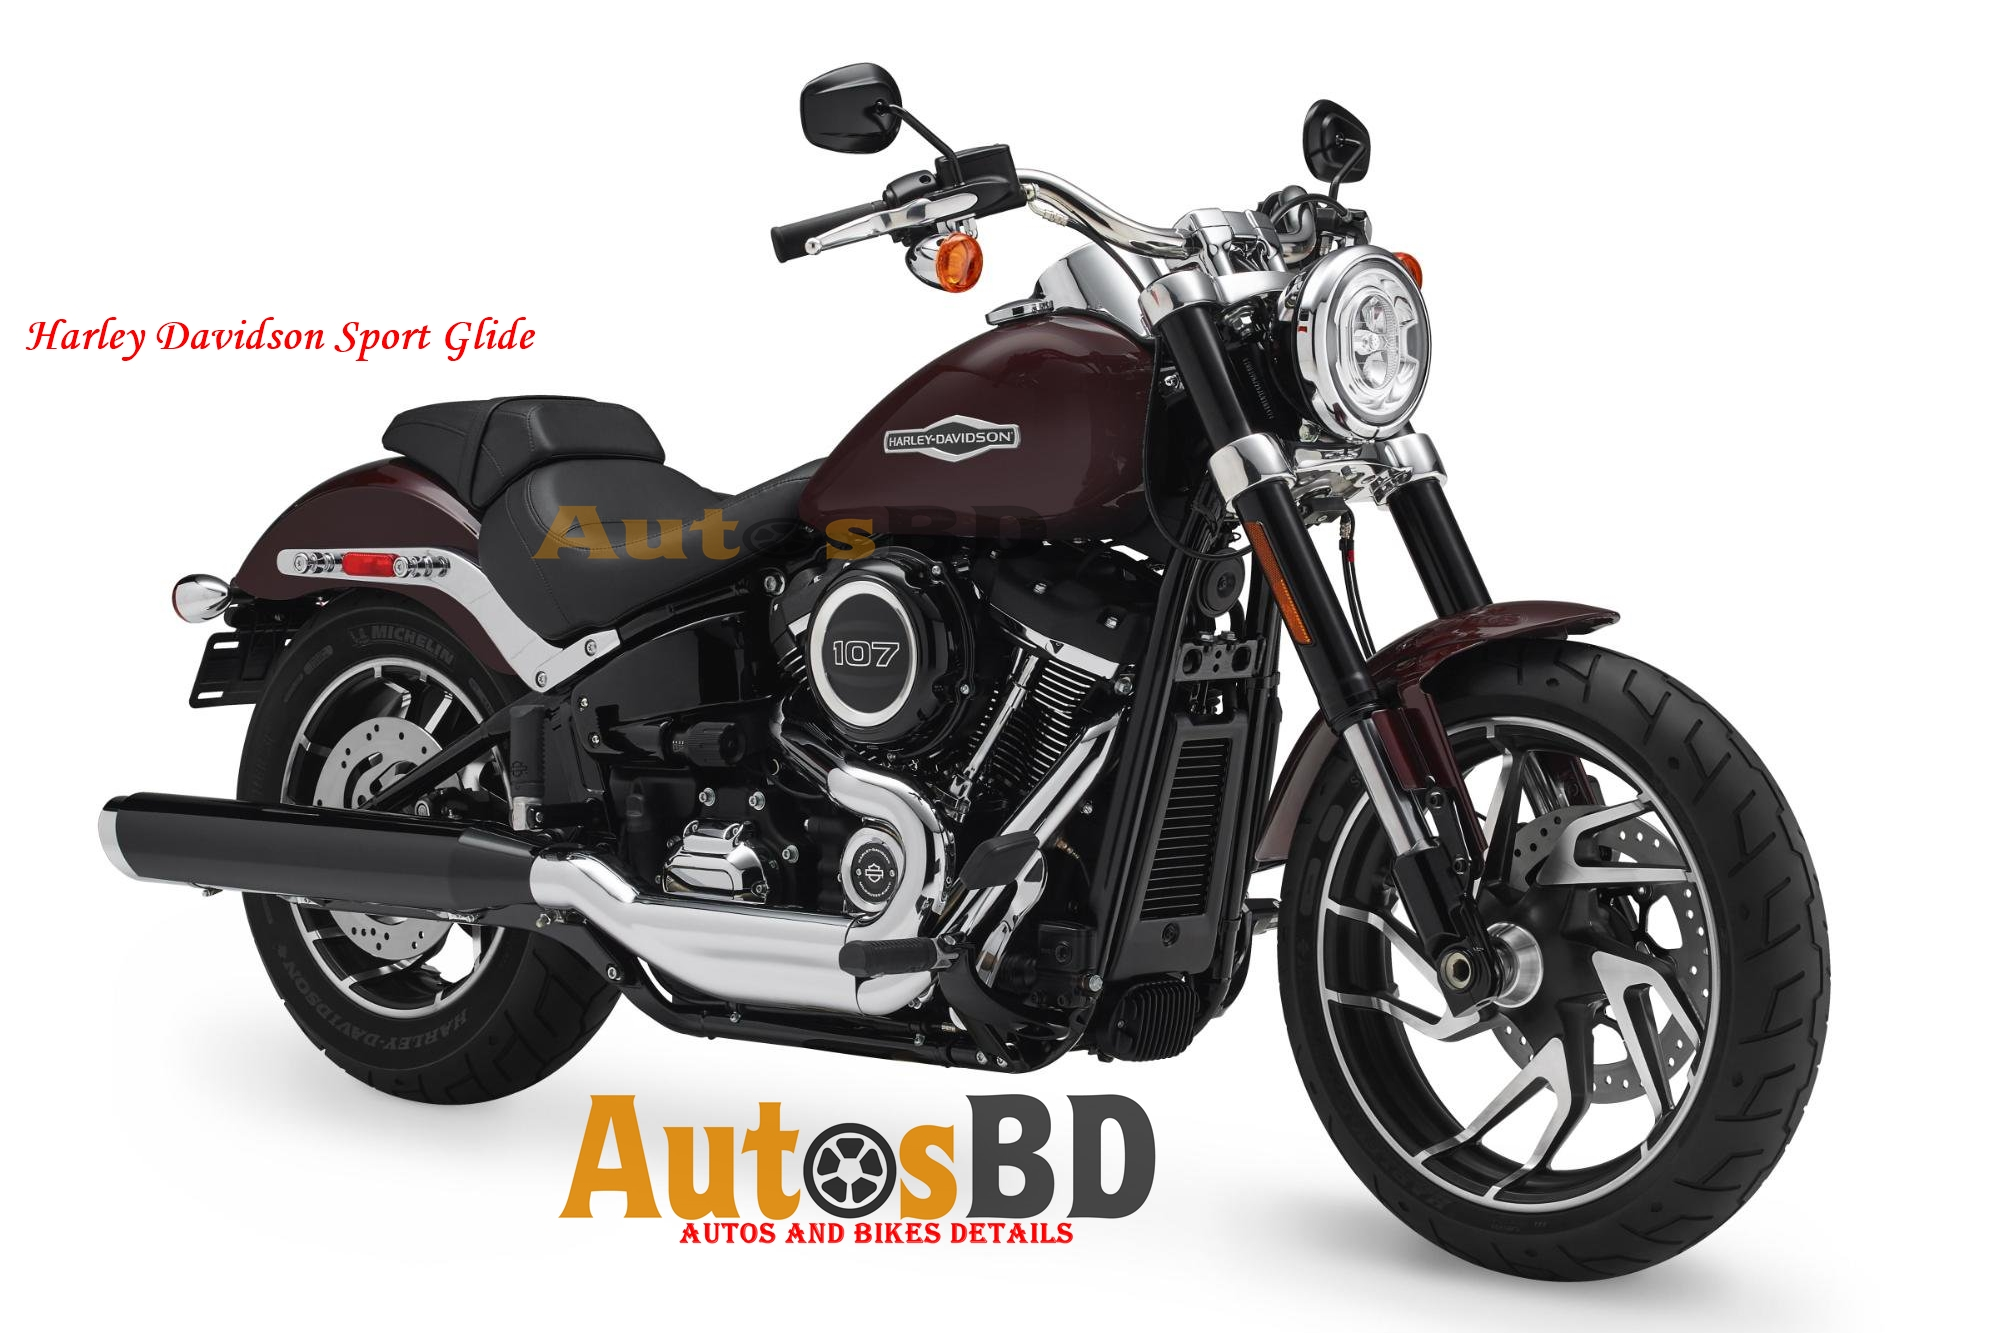 Harley Davidson Sport Glide Specification